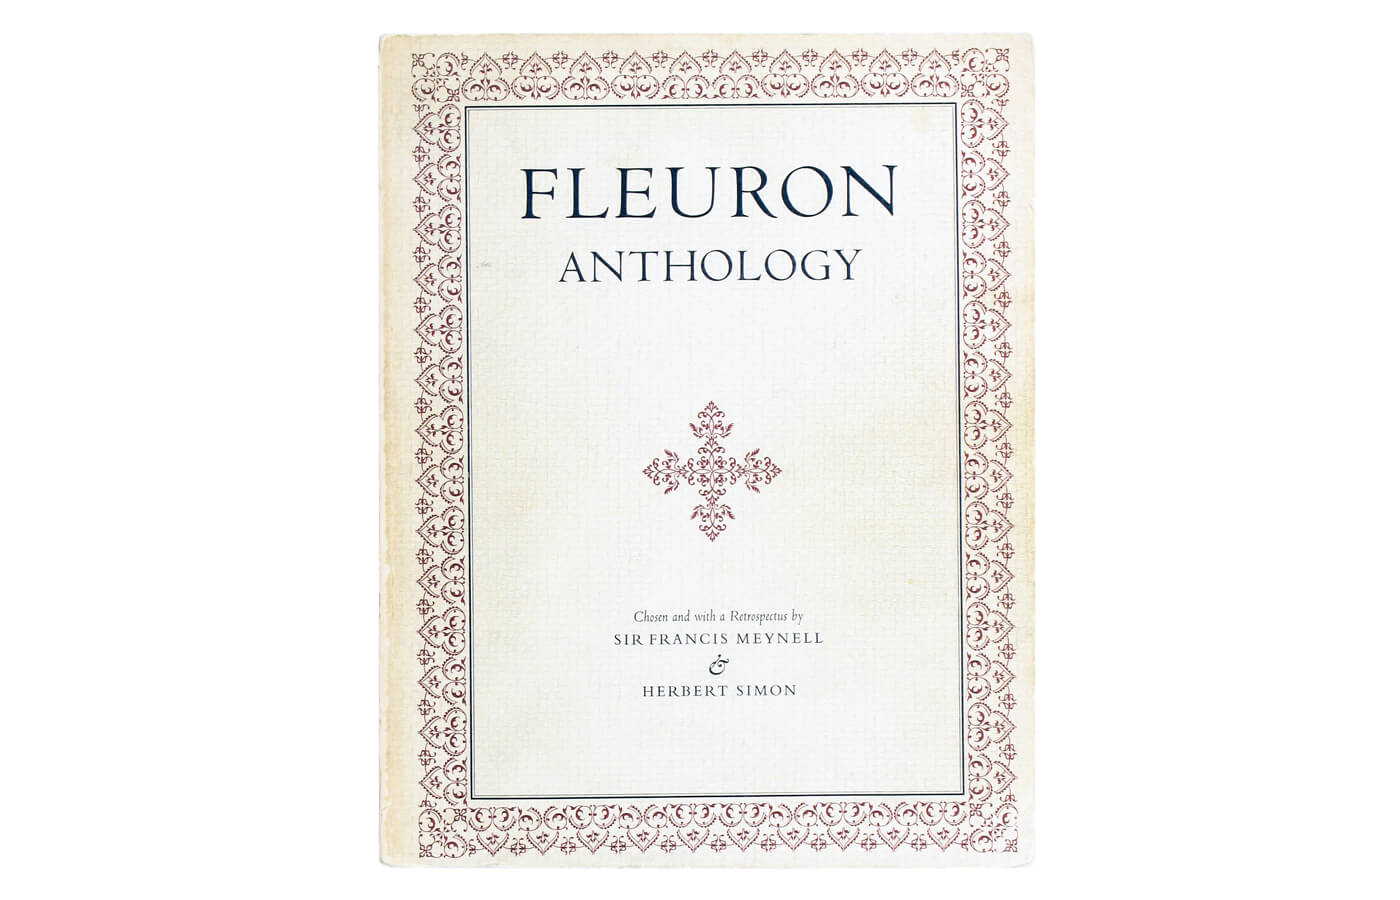 Fleuron Anthology